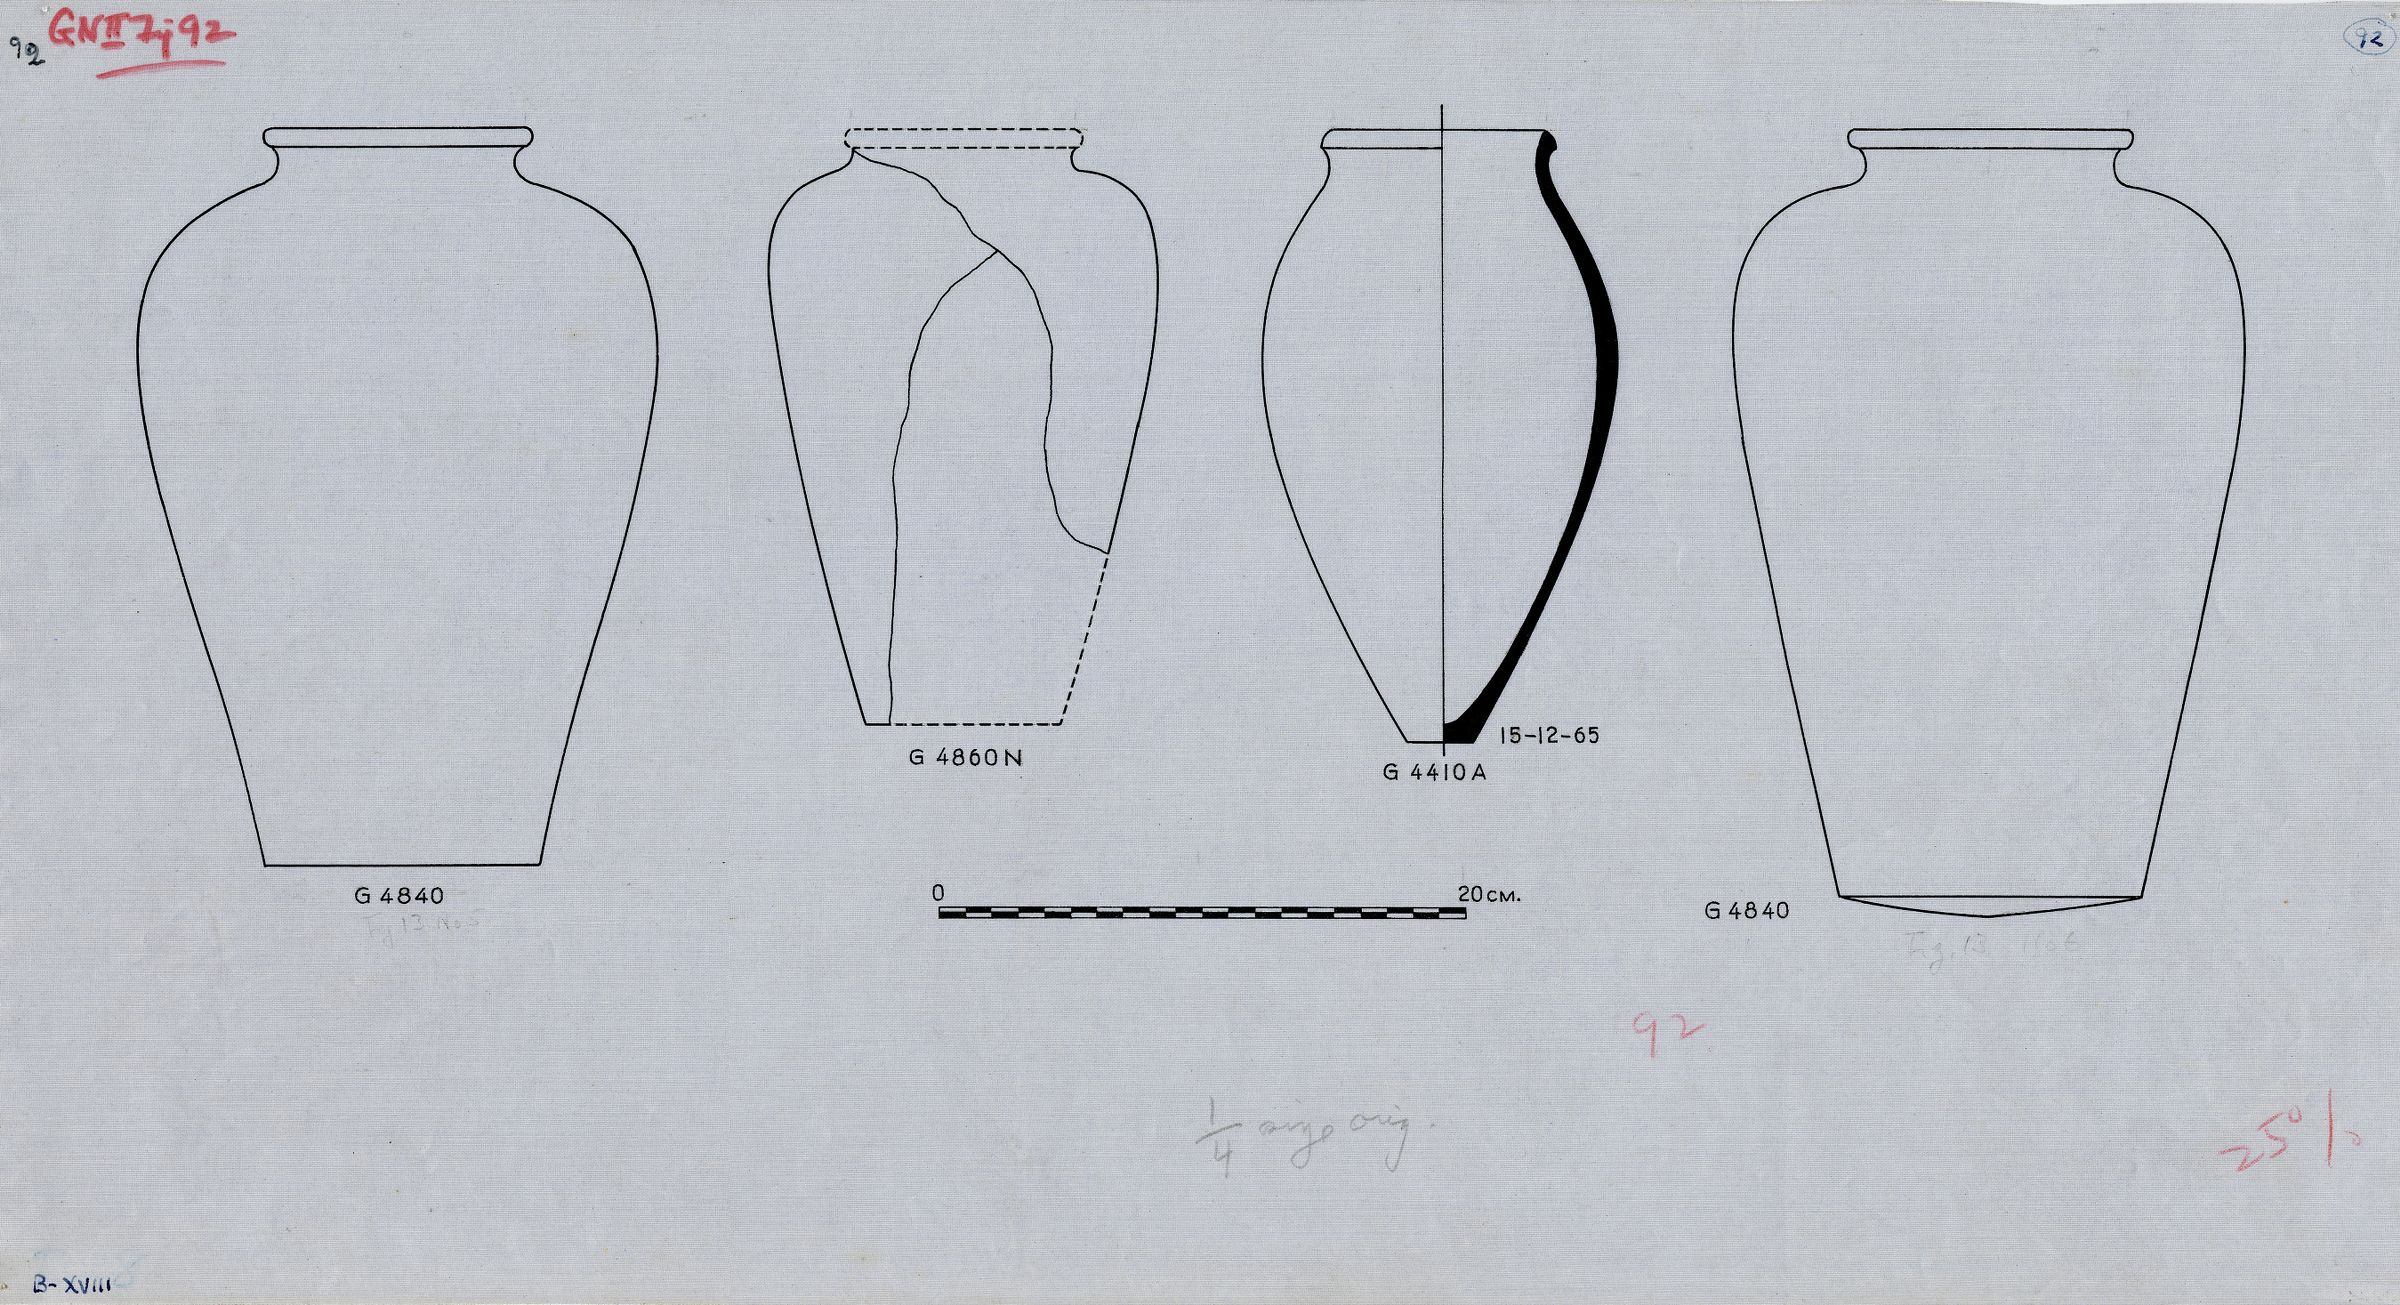 Drawings: Pottery, jars from G 4410, Shaft A; G 4840; G 4860, Shaft N